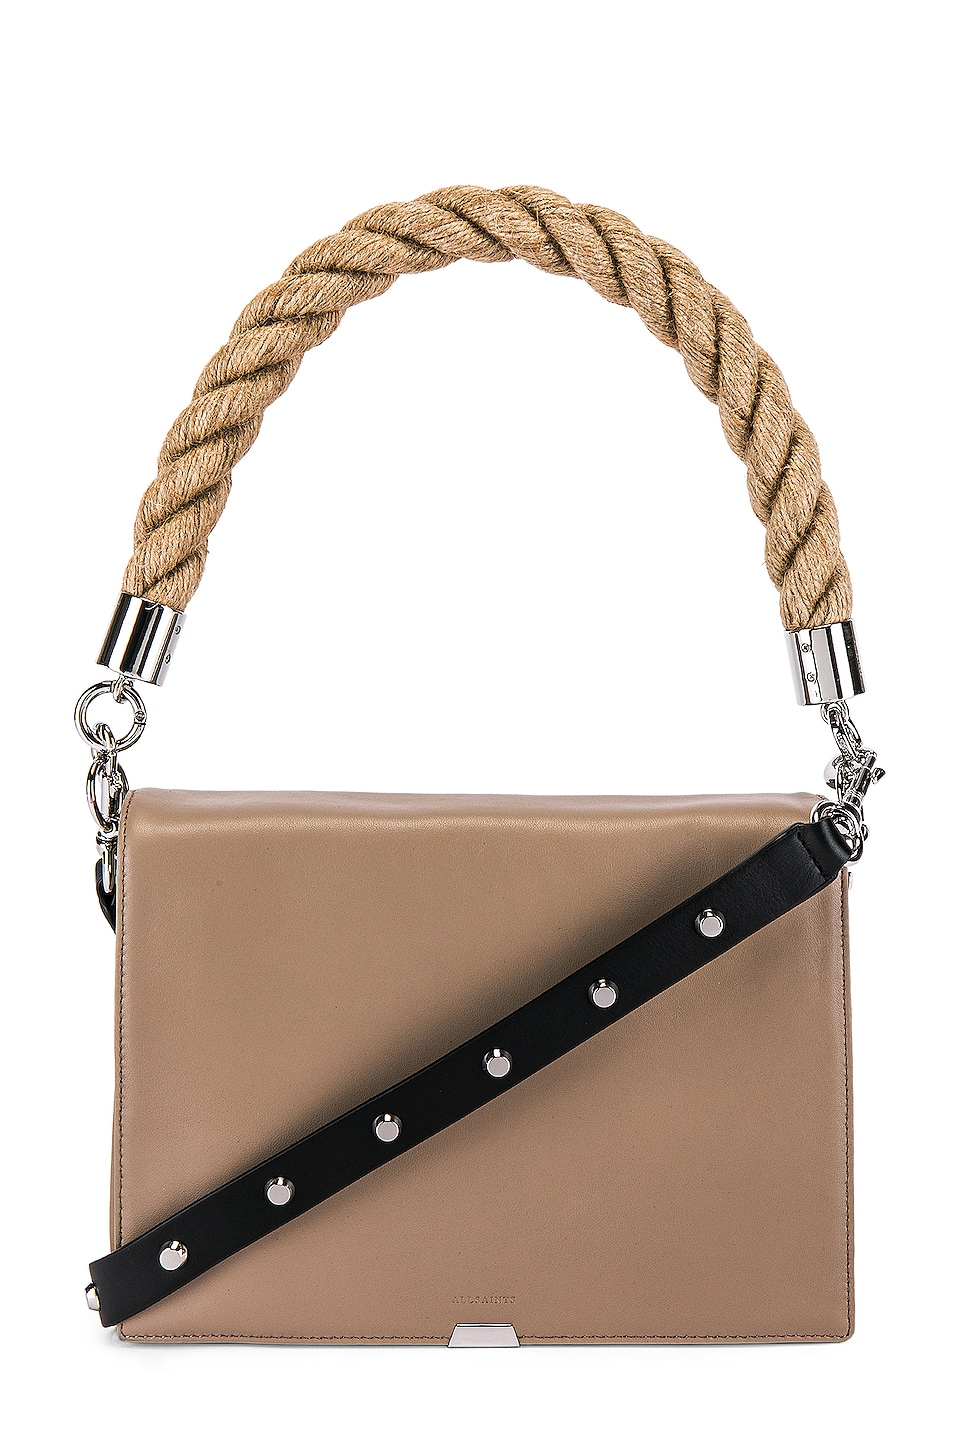 ALLSAINTS Harri Square Crossbody in Dune